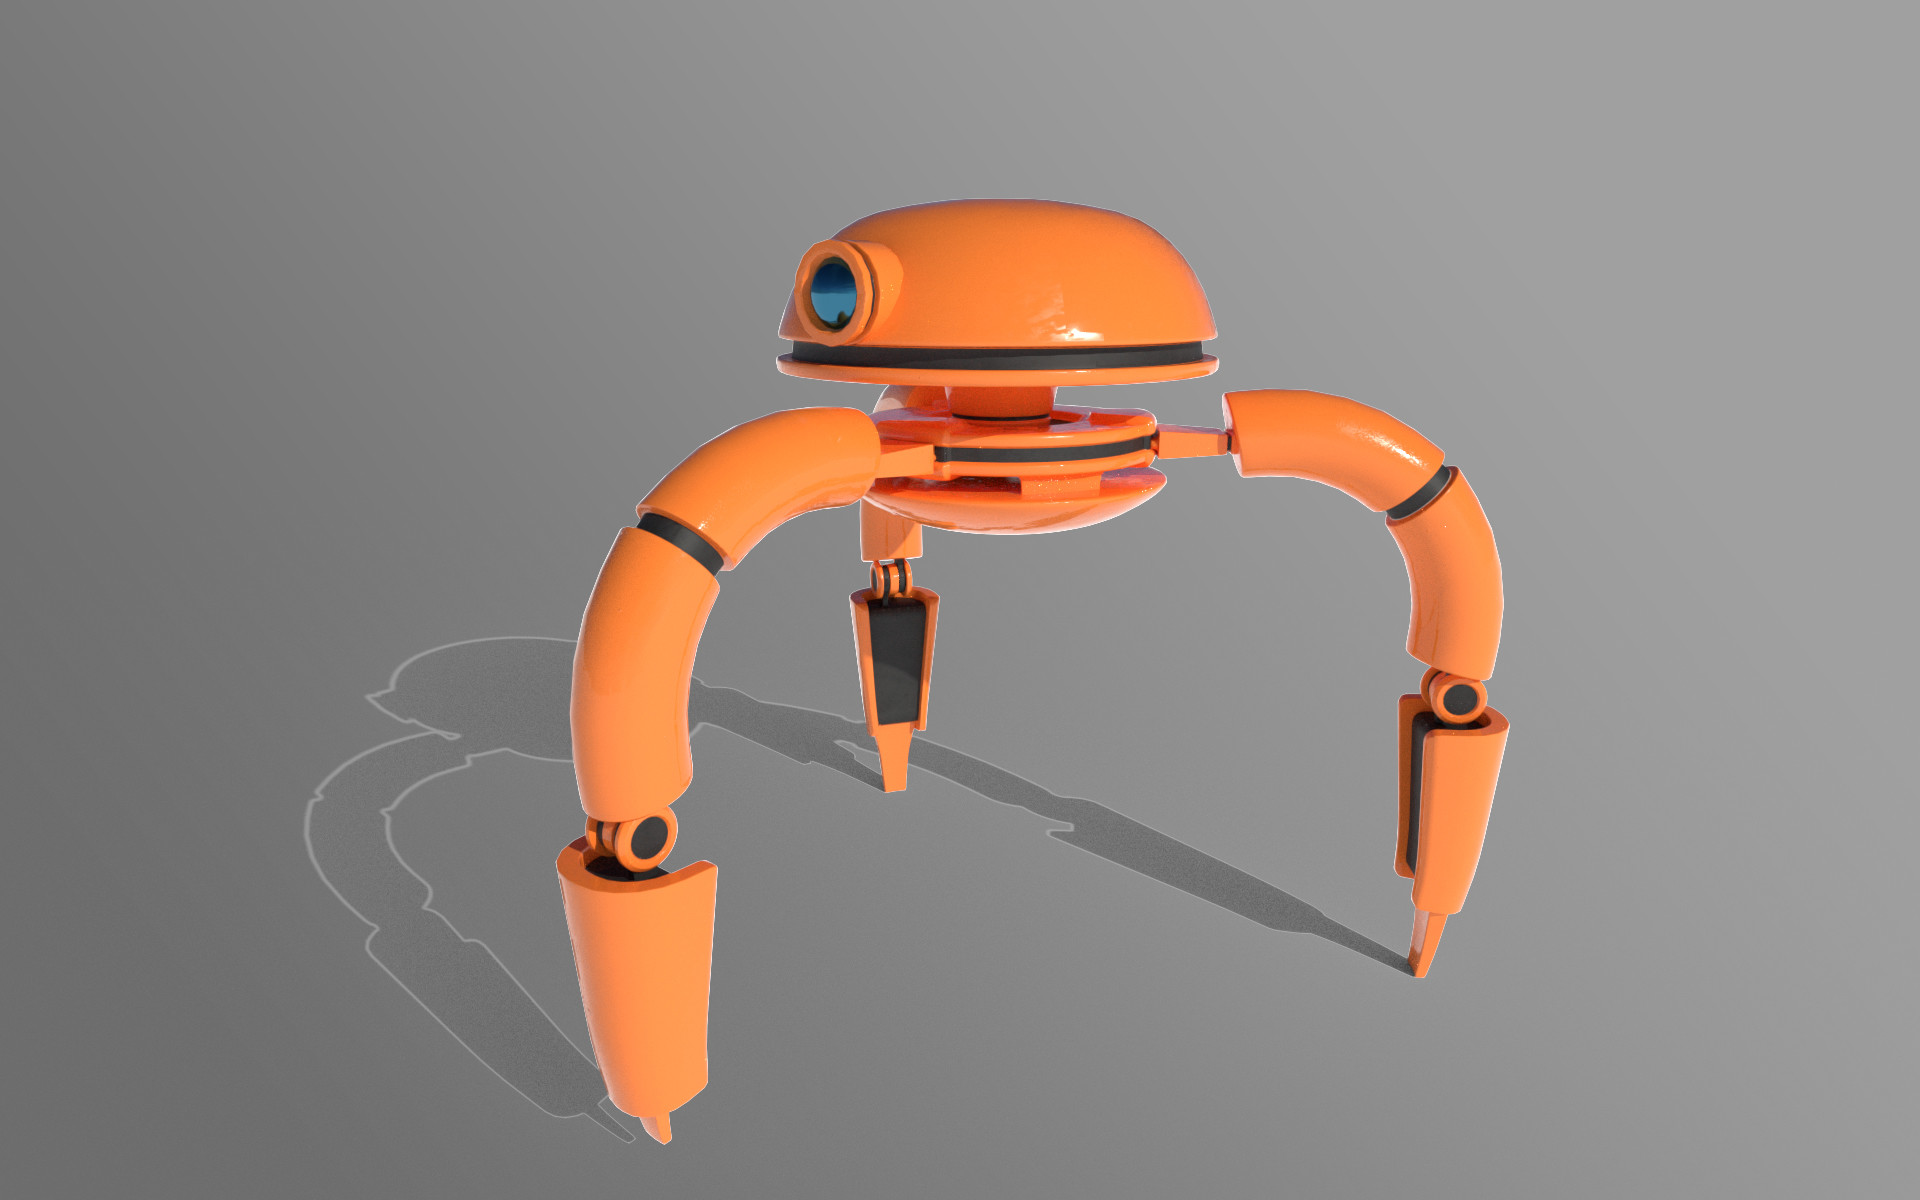 Alexis faintreny render robot3 colored